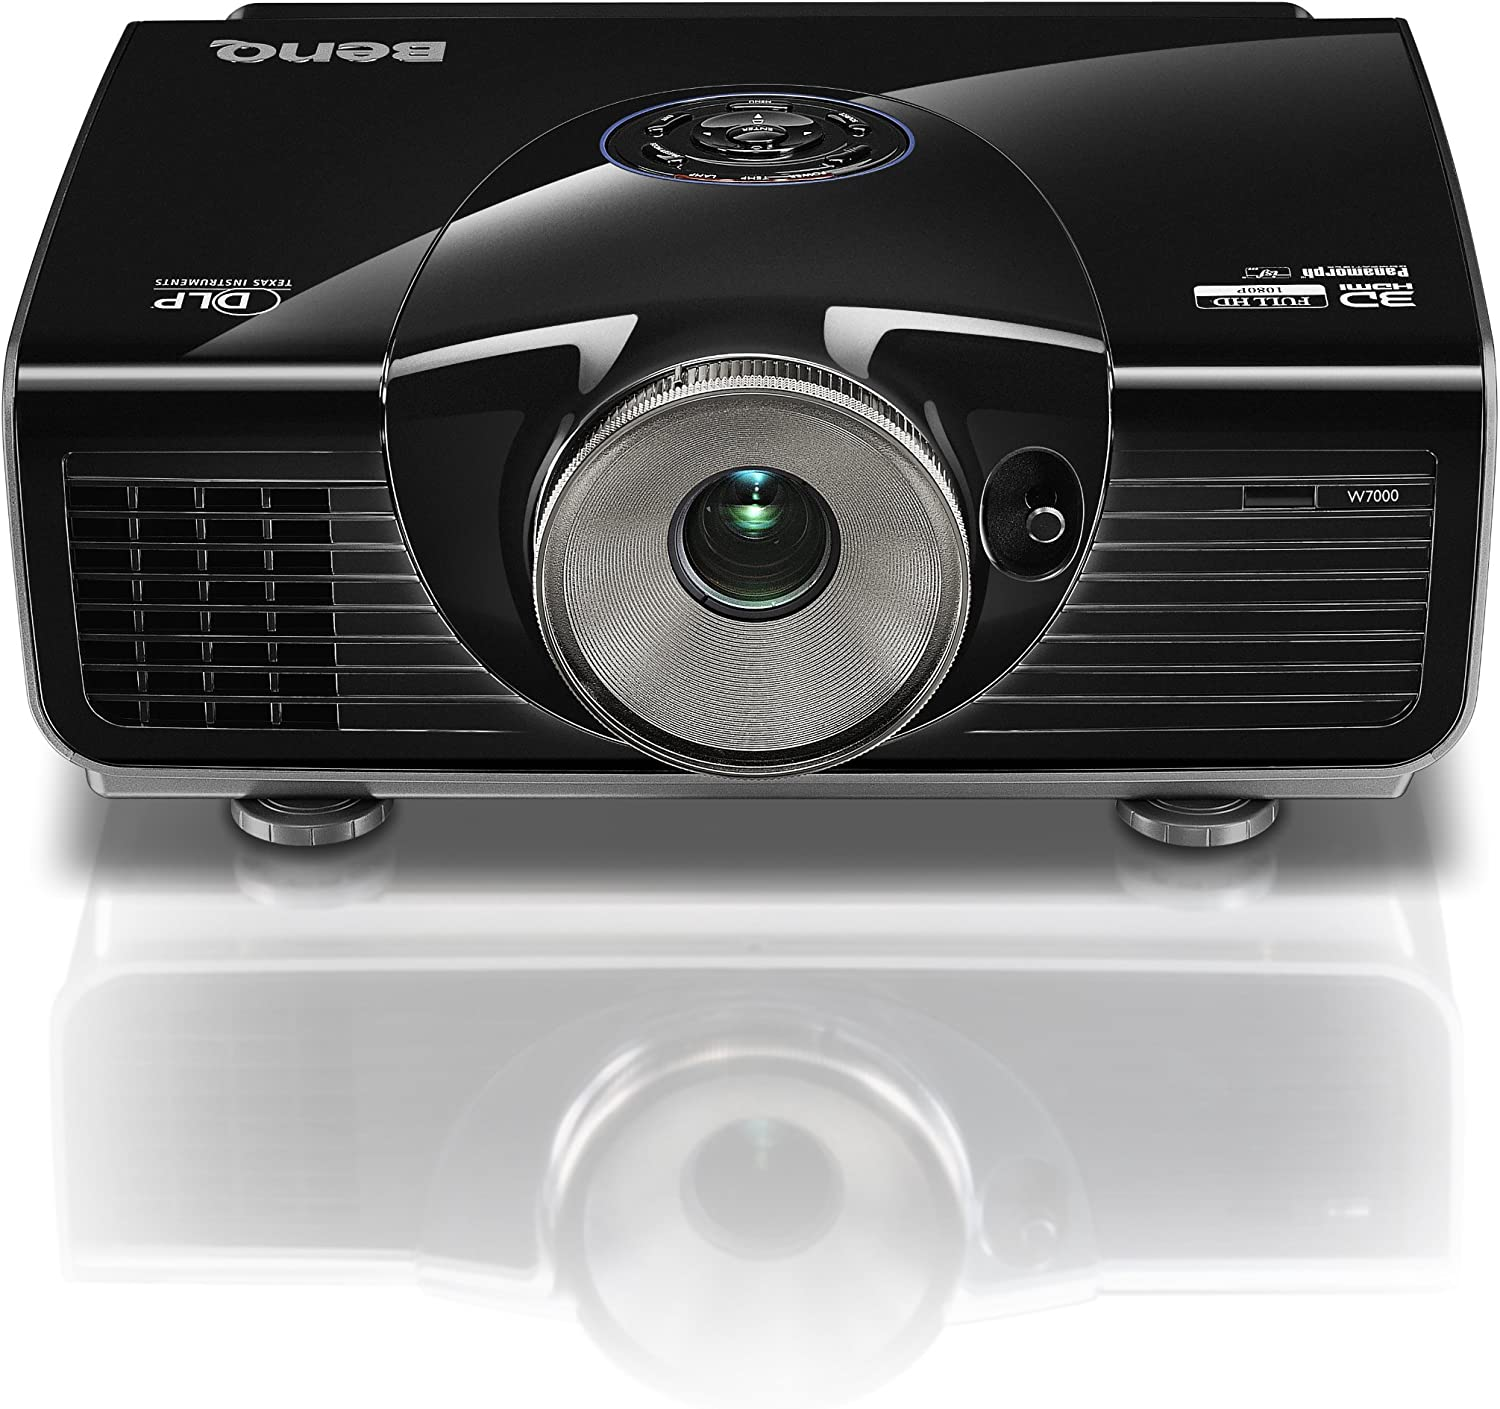 BenQ W7000 300-Inches 1080p Cinema Quality Home Projection System -Black